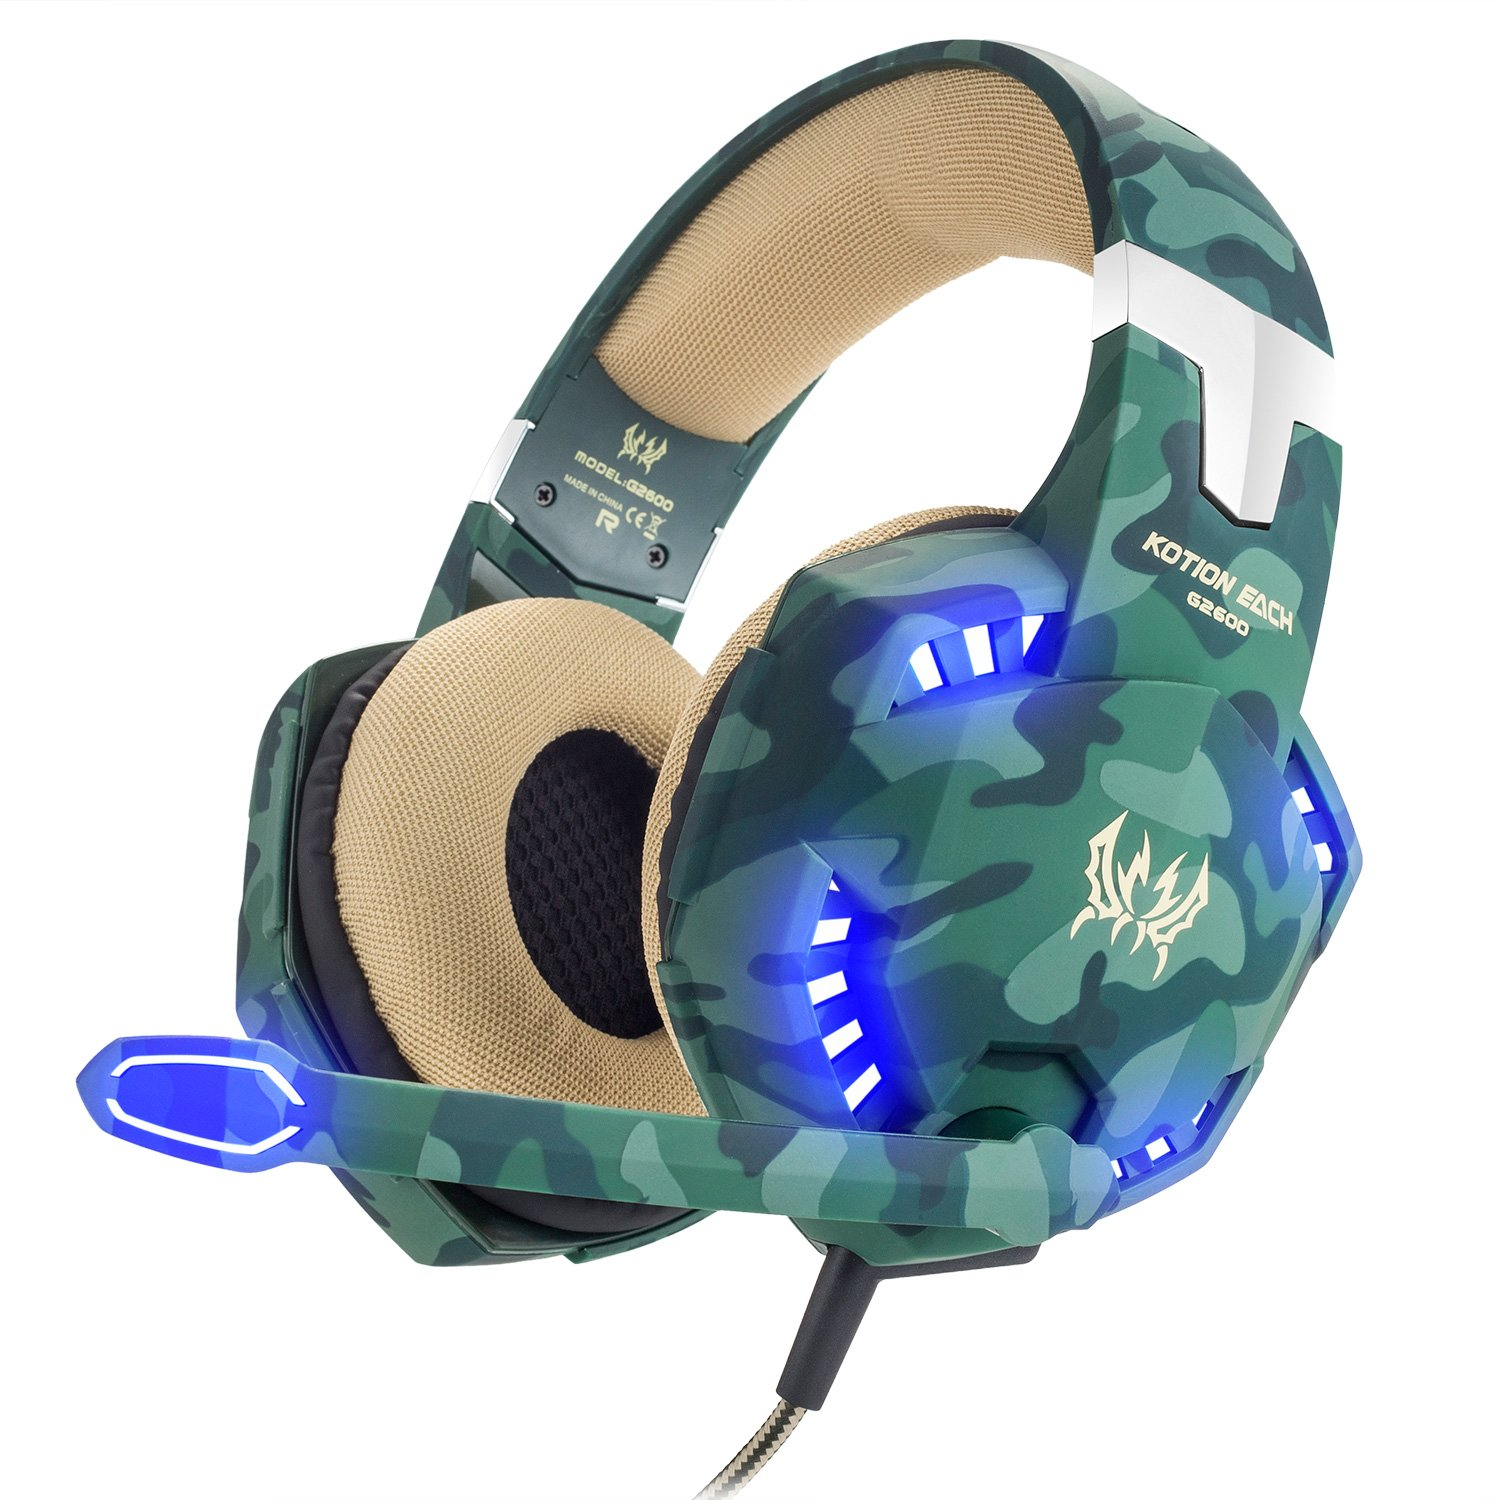 Auriculares Versiontech G2000 Pc Gaming Con Luces Led